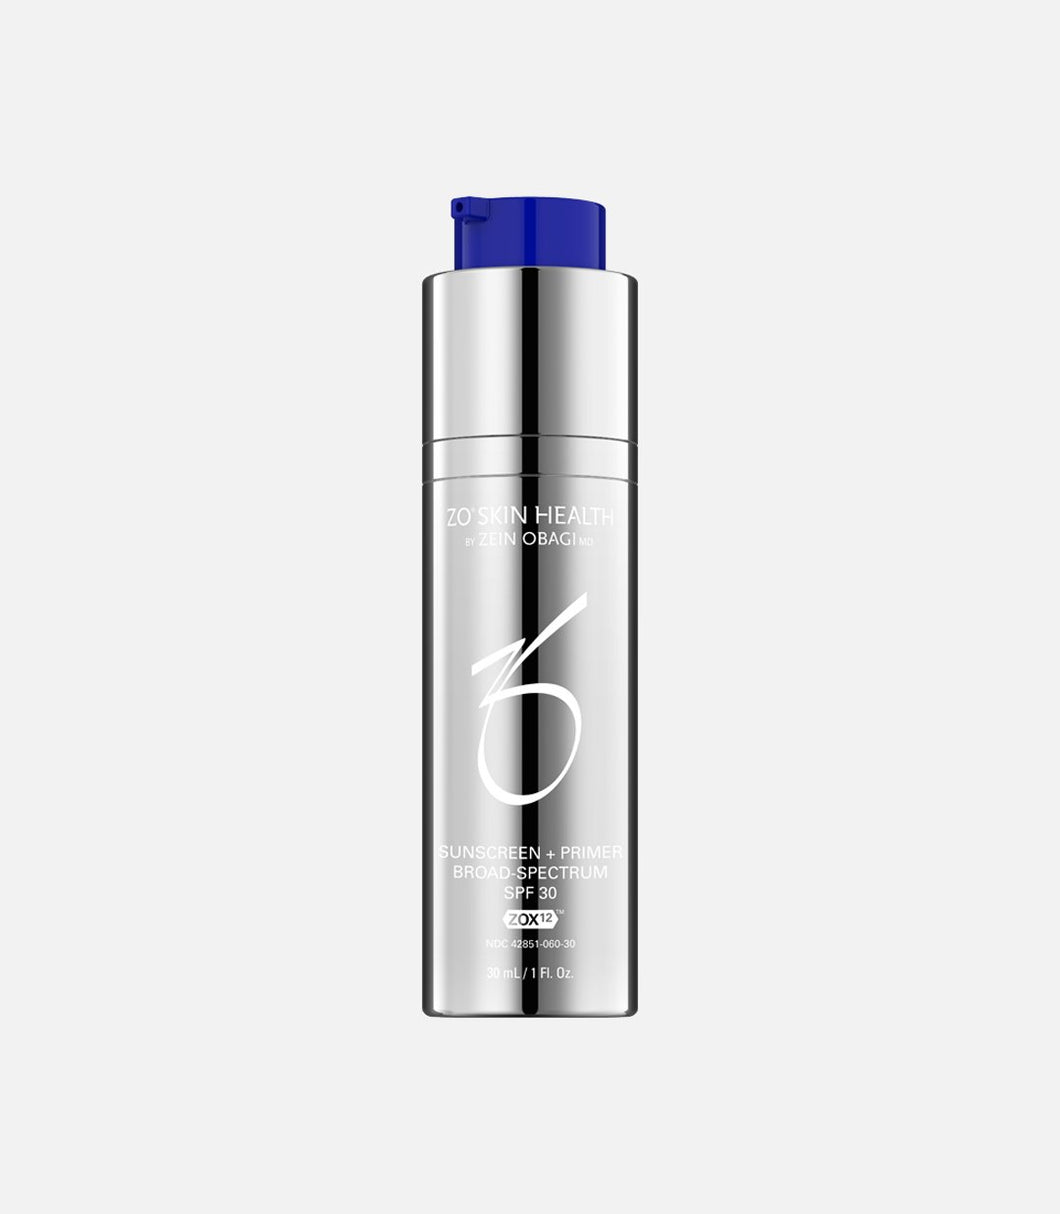 ZO Skin Health Sunscreen and Primer SPF 30